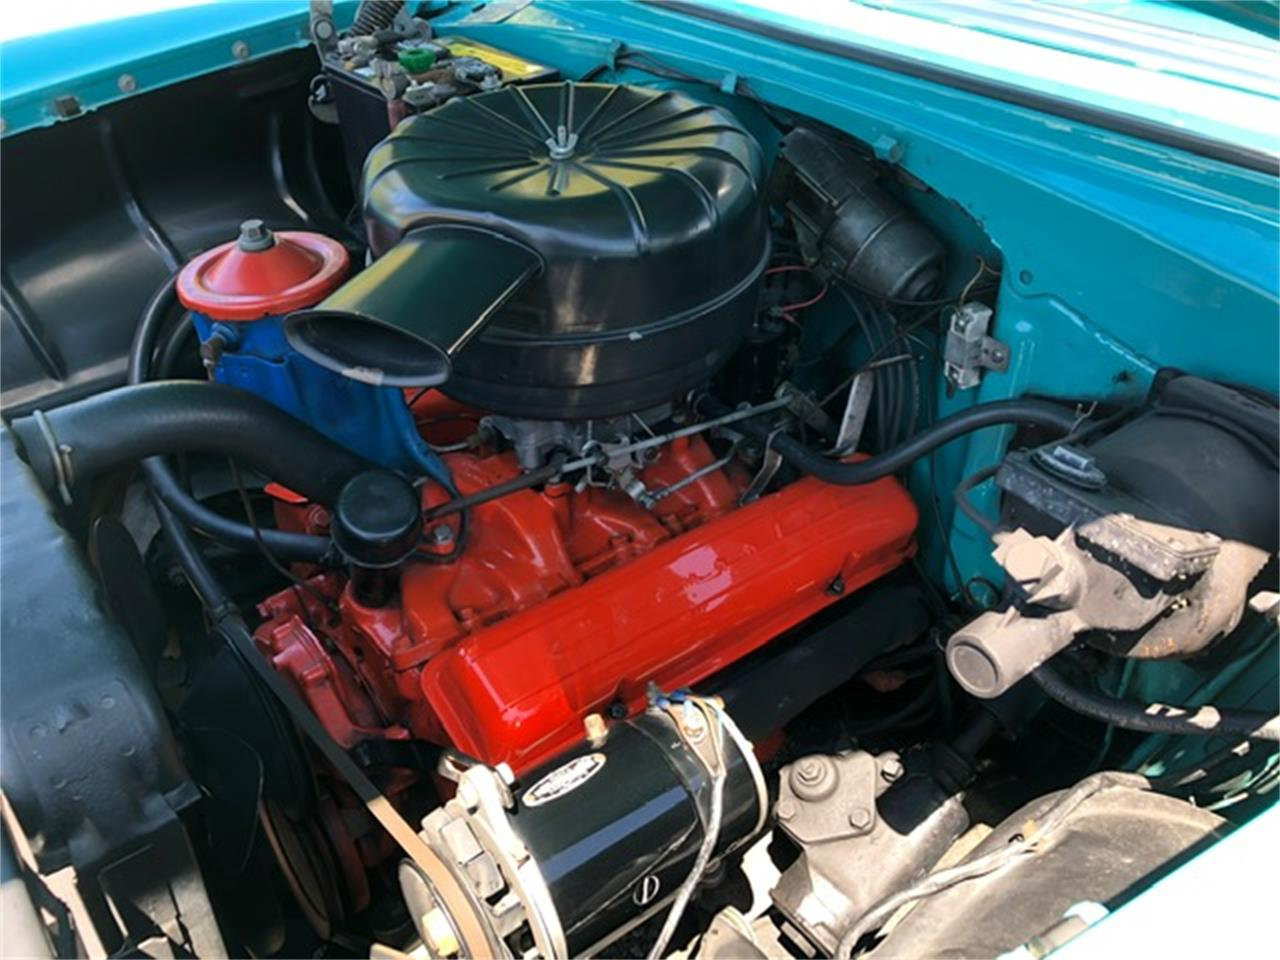 1955 Chevrolet Bel Air for sale in Orange, CA – photo 3